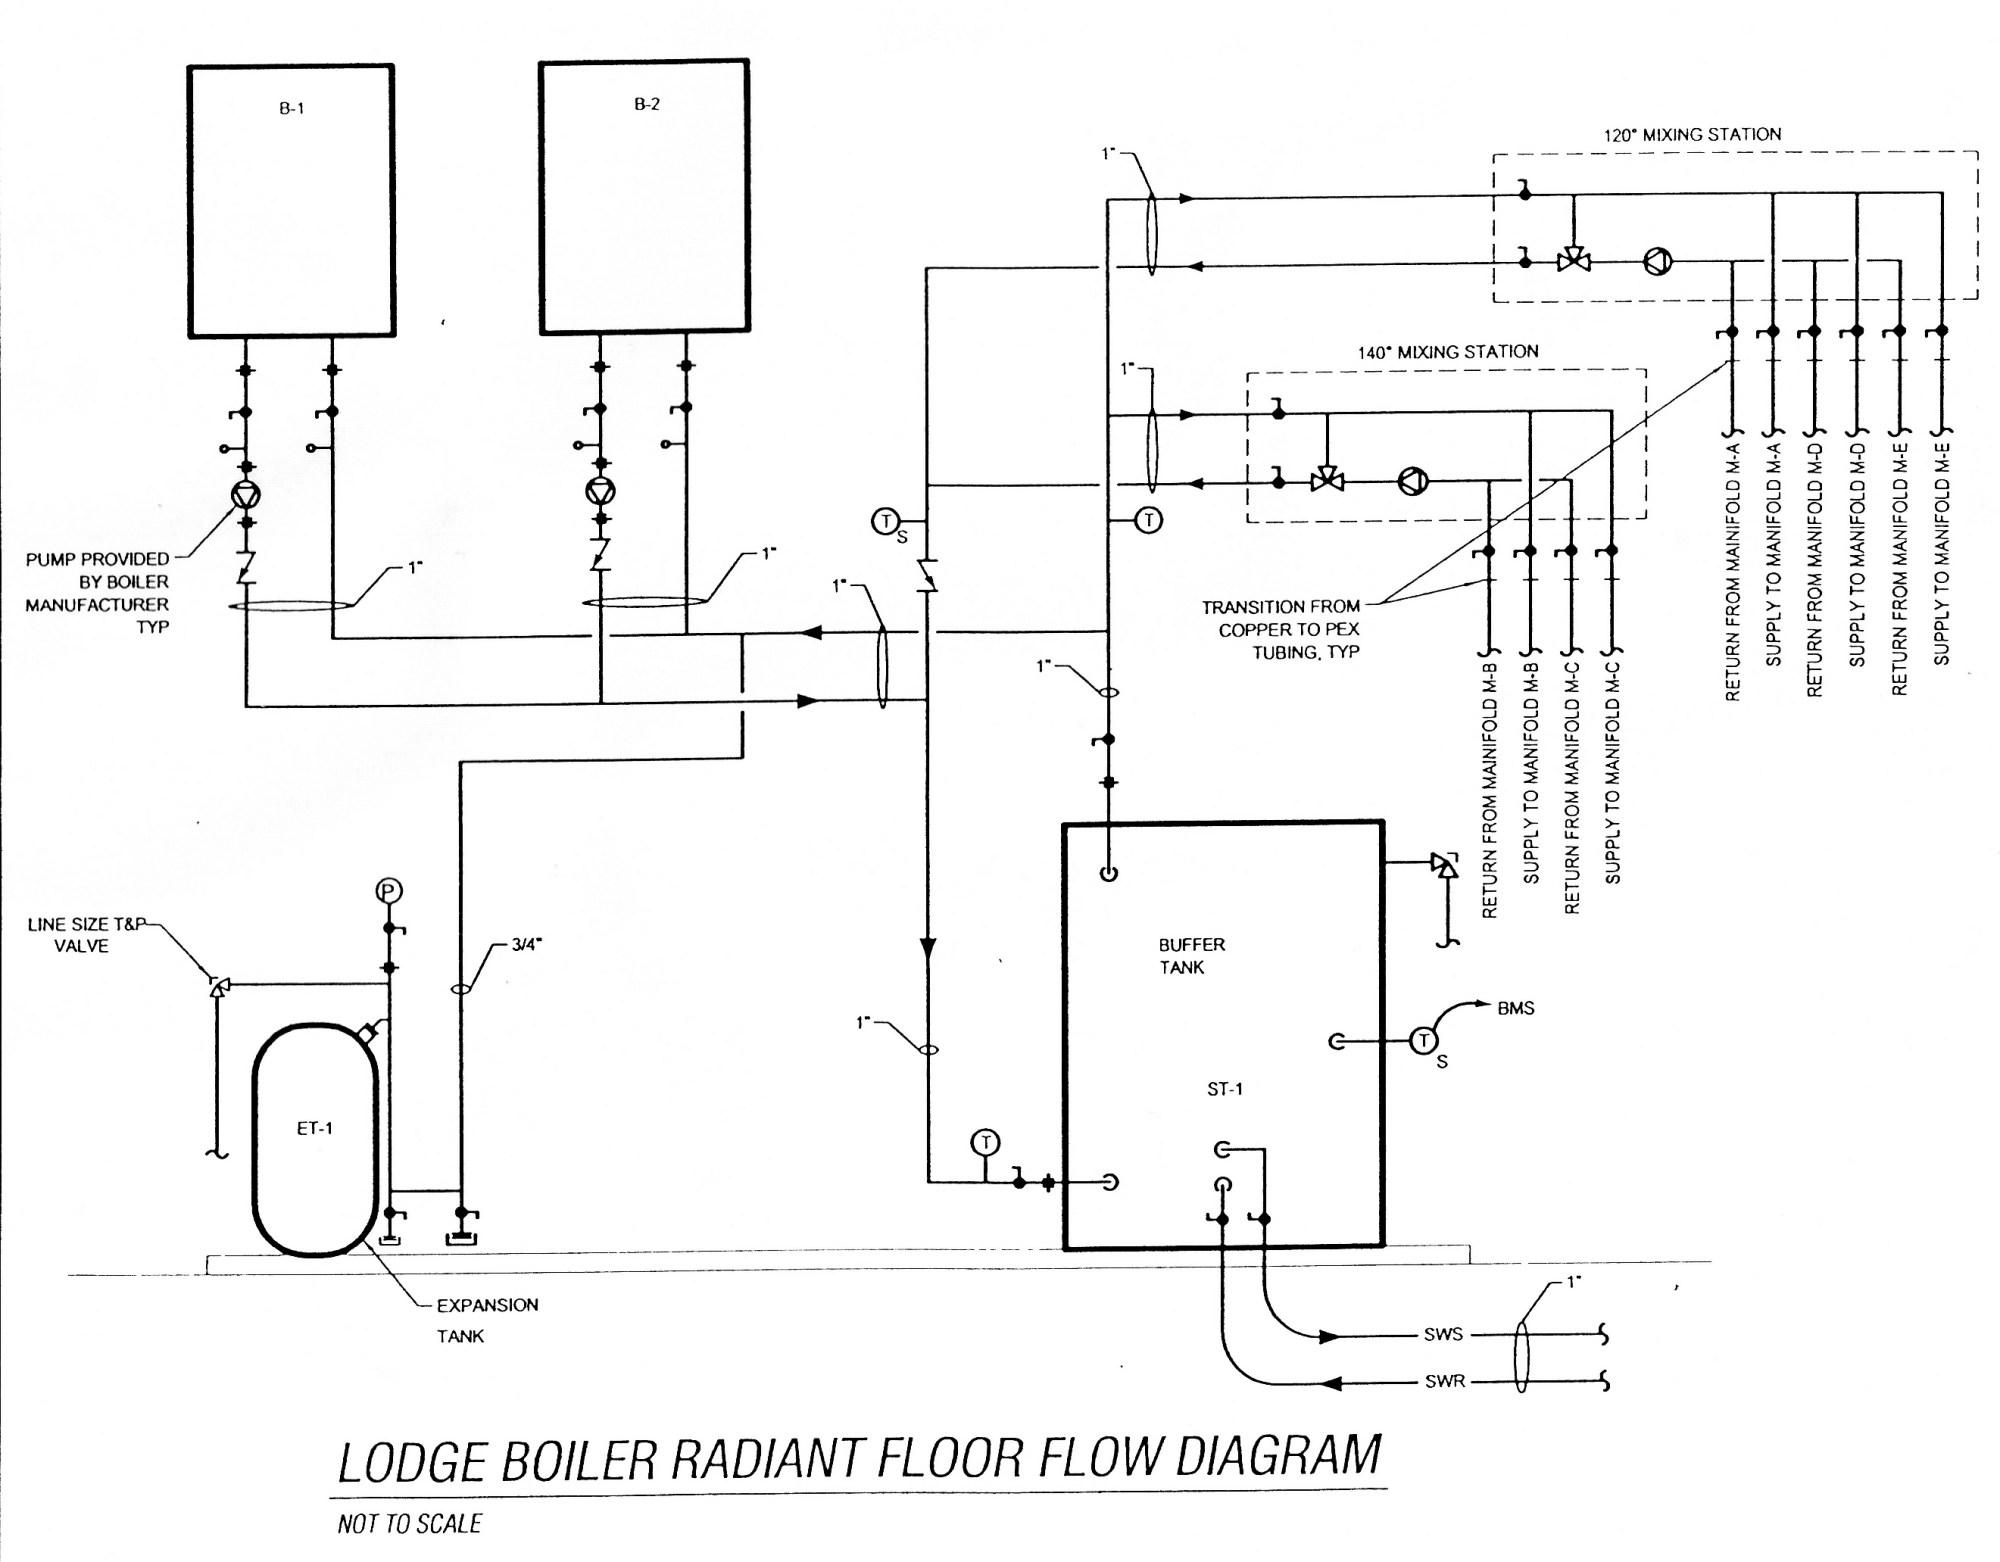 hight resolution of  wood boiler piping diagrams buffer tank piping u2014 heating help the wallboiler jpg 0b